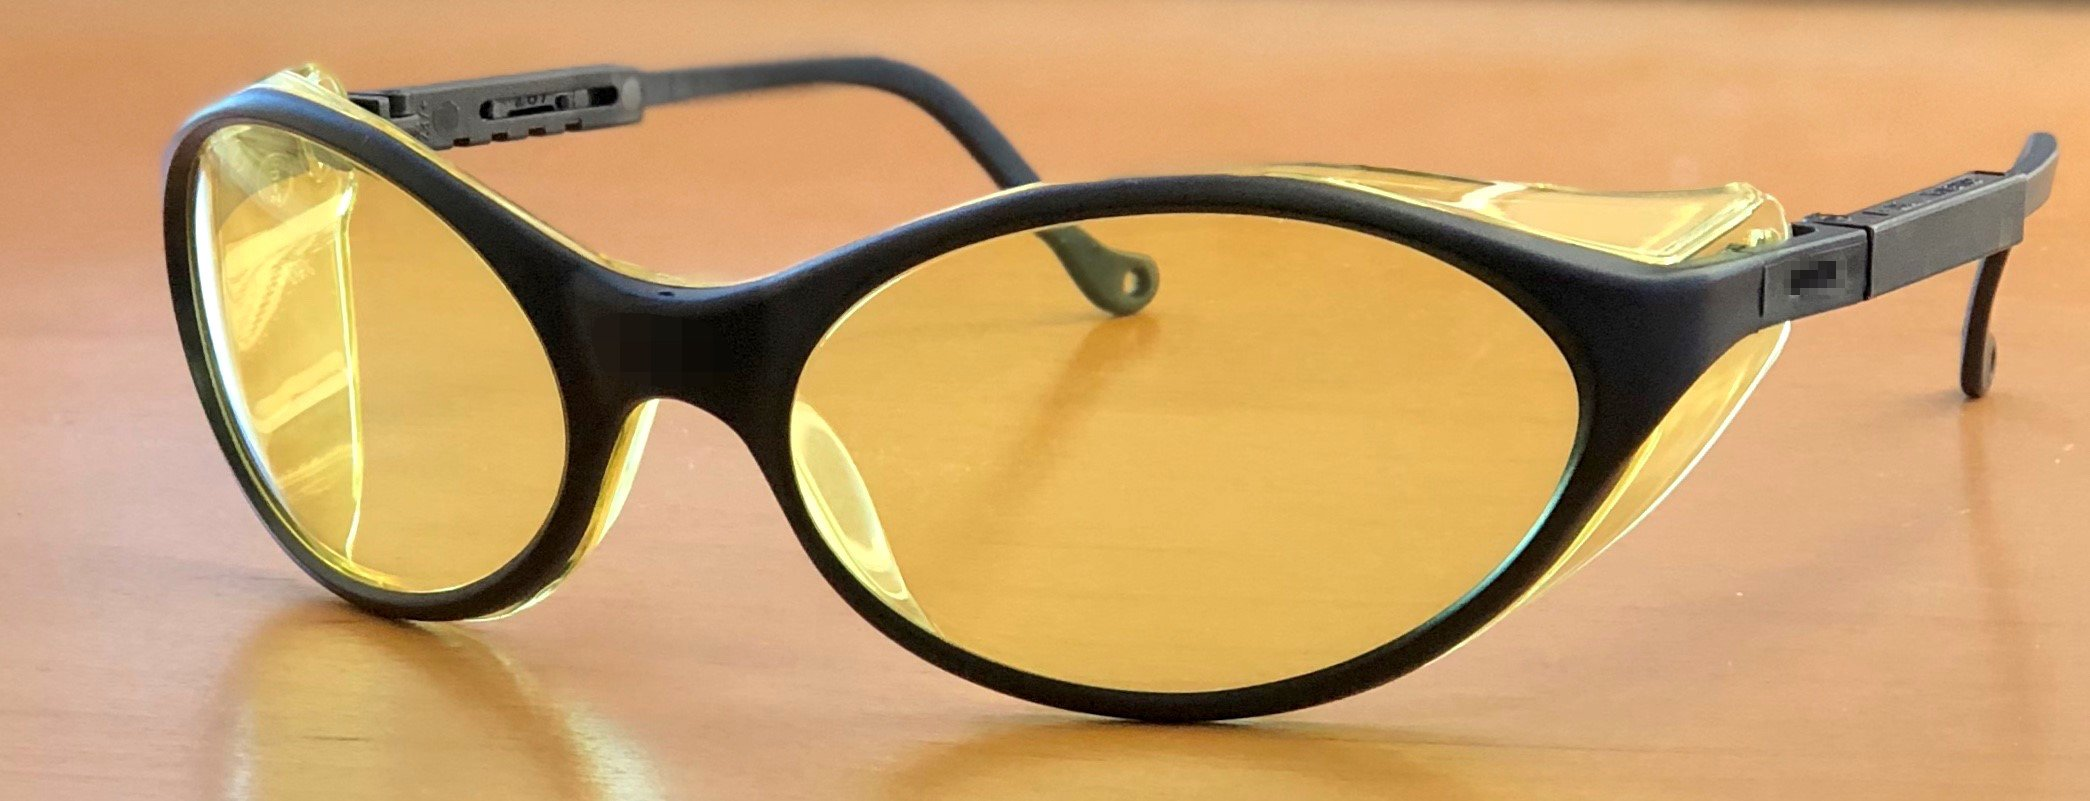 Amber-Tinted Glasses Could Lead to Improved Sleep